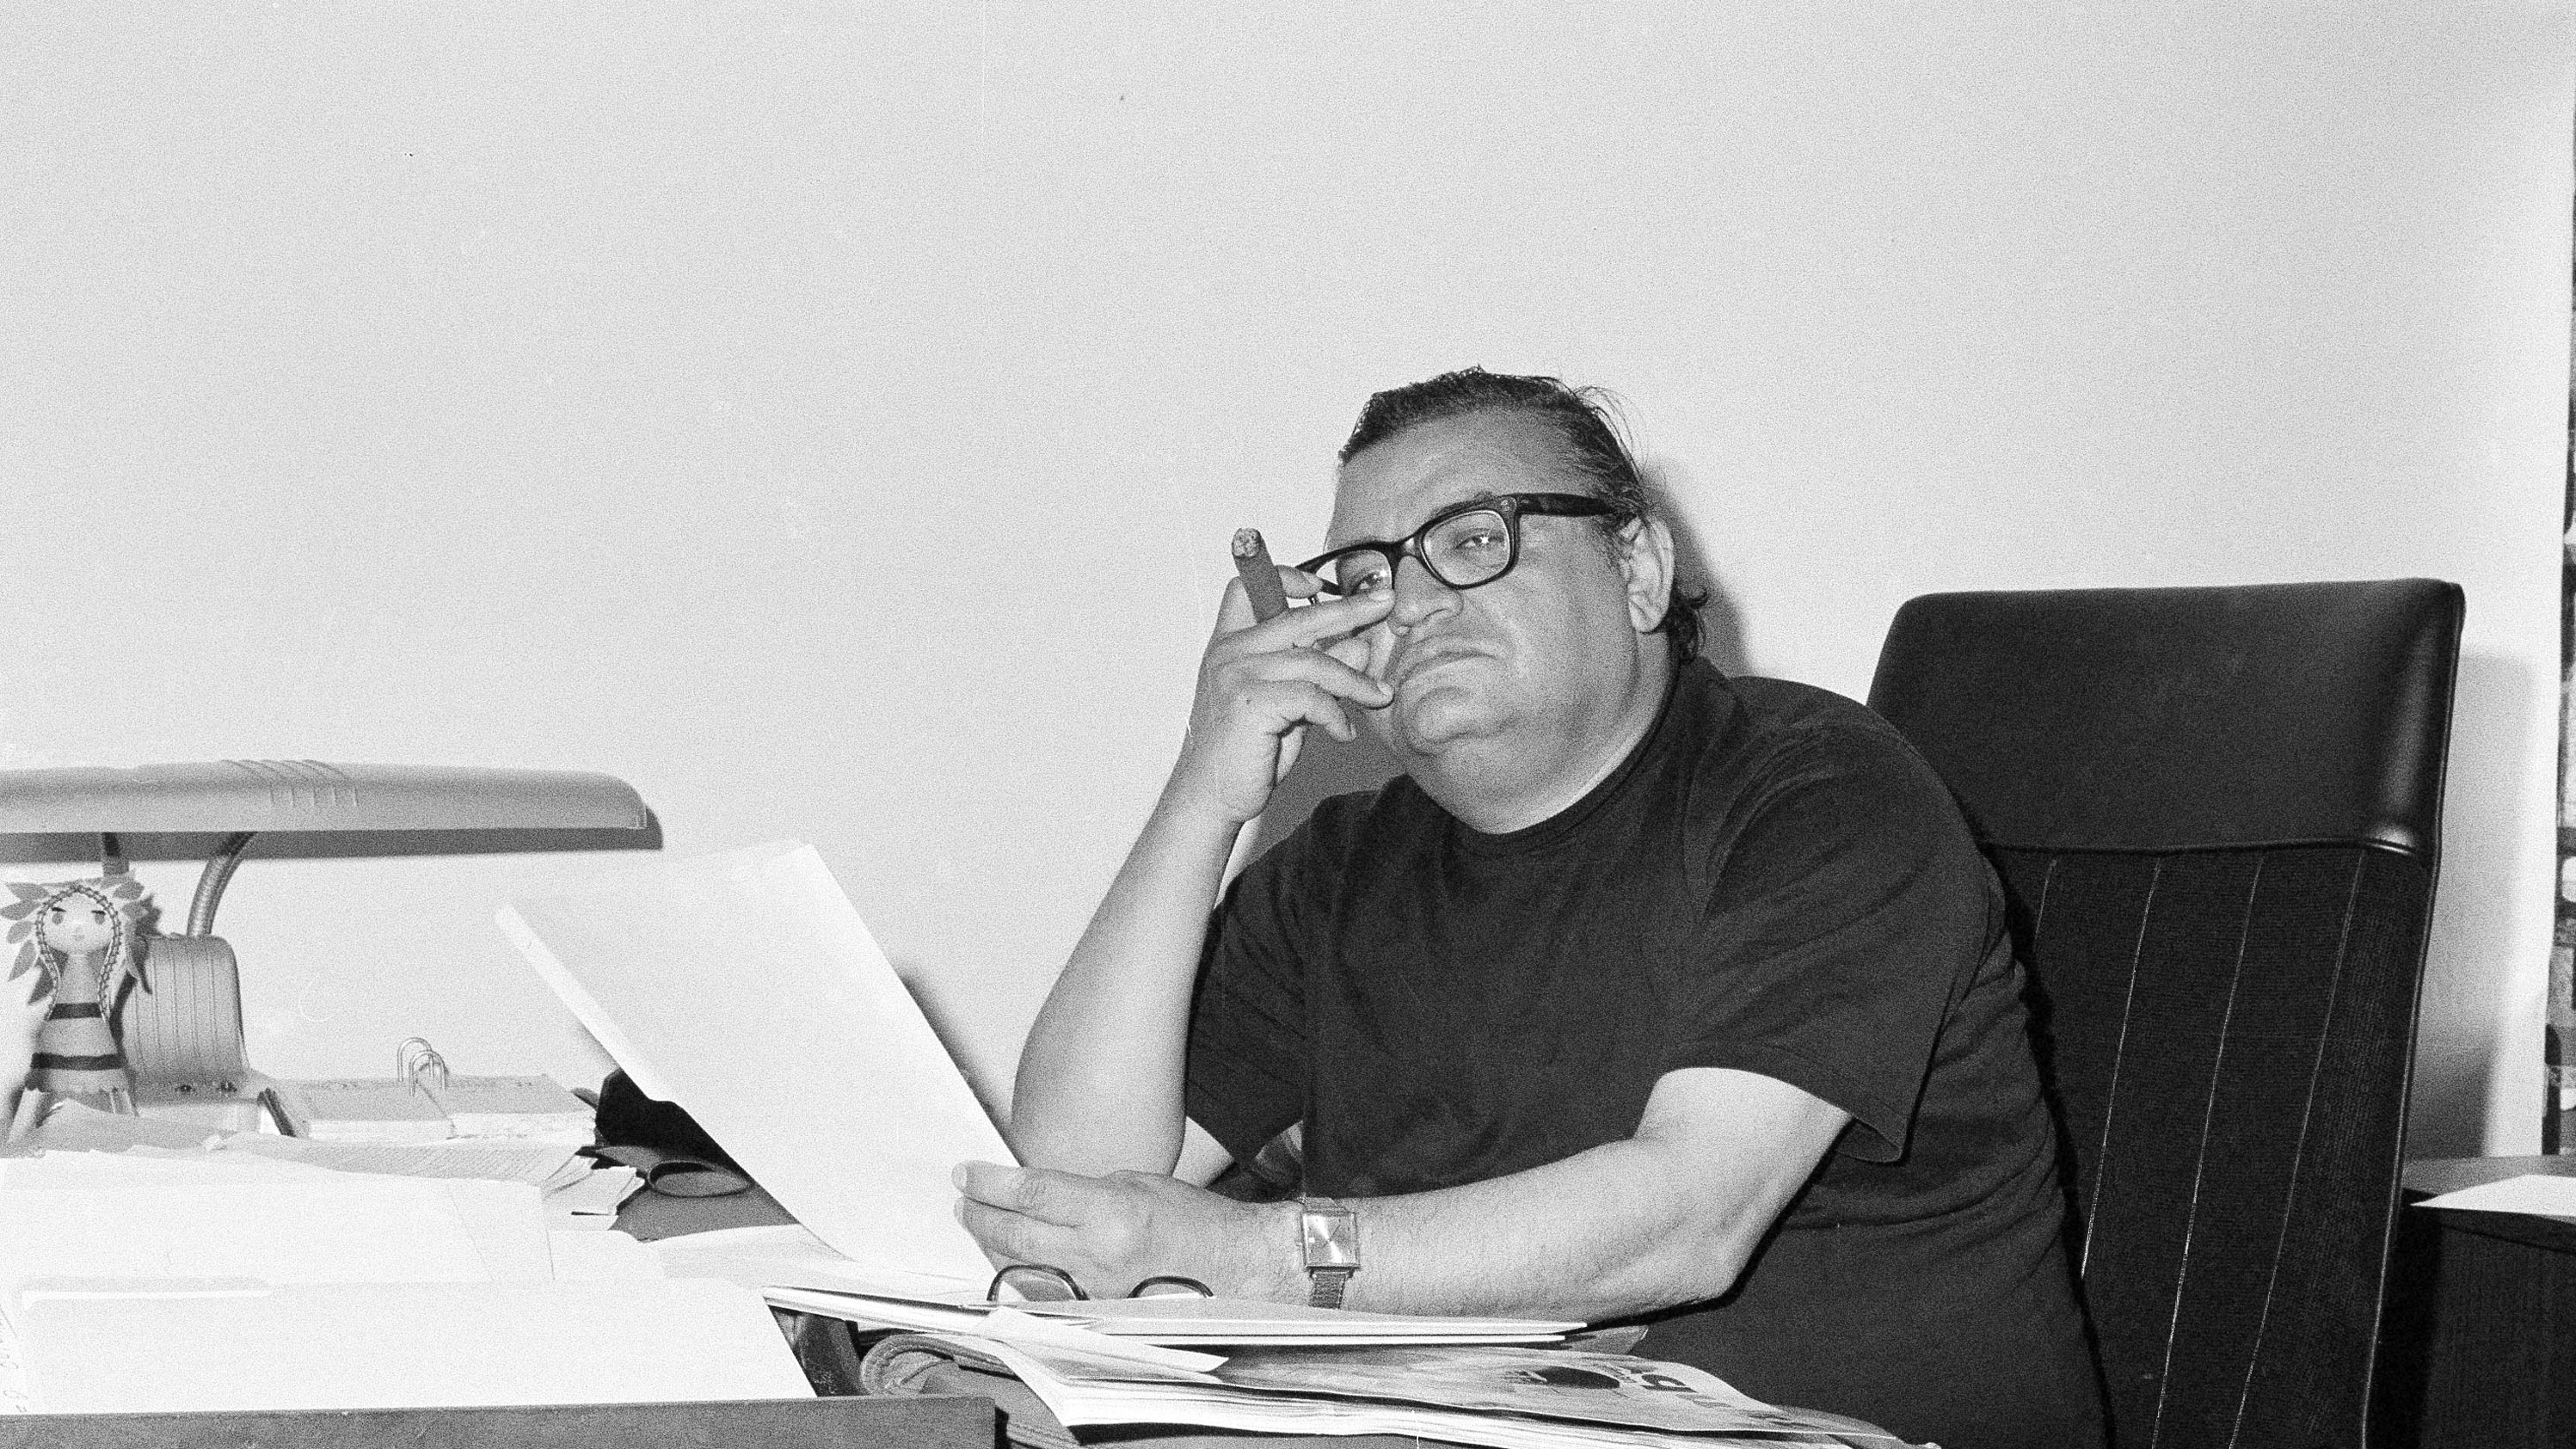 Mario Puzo is the author of The Godfather.